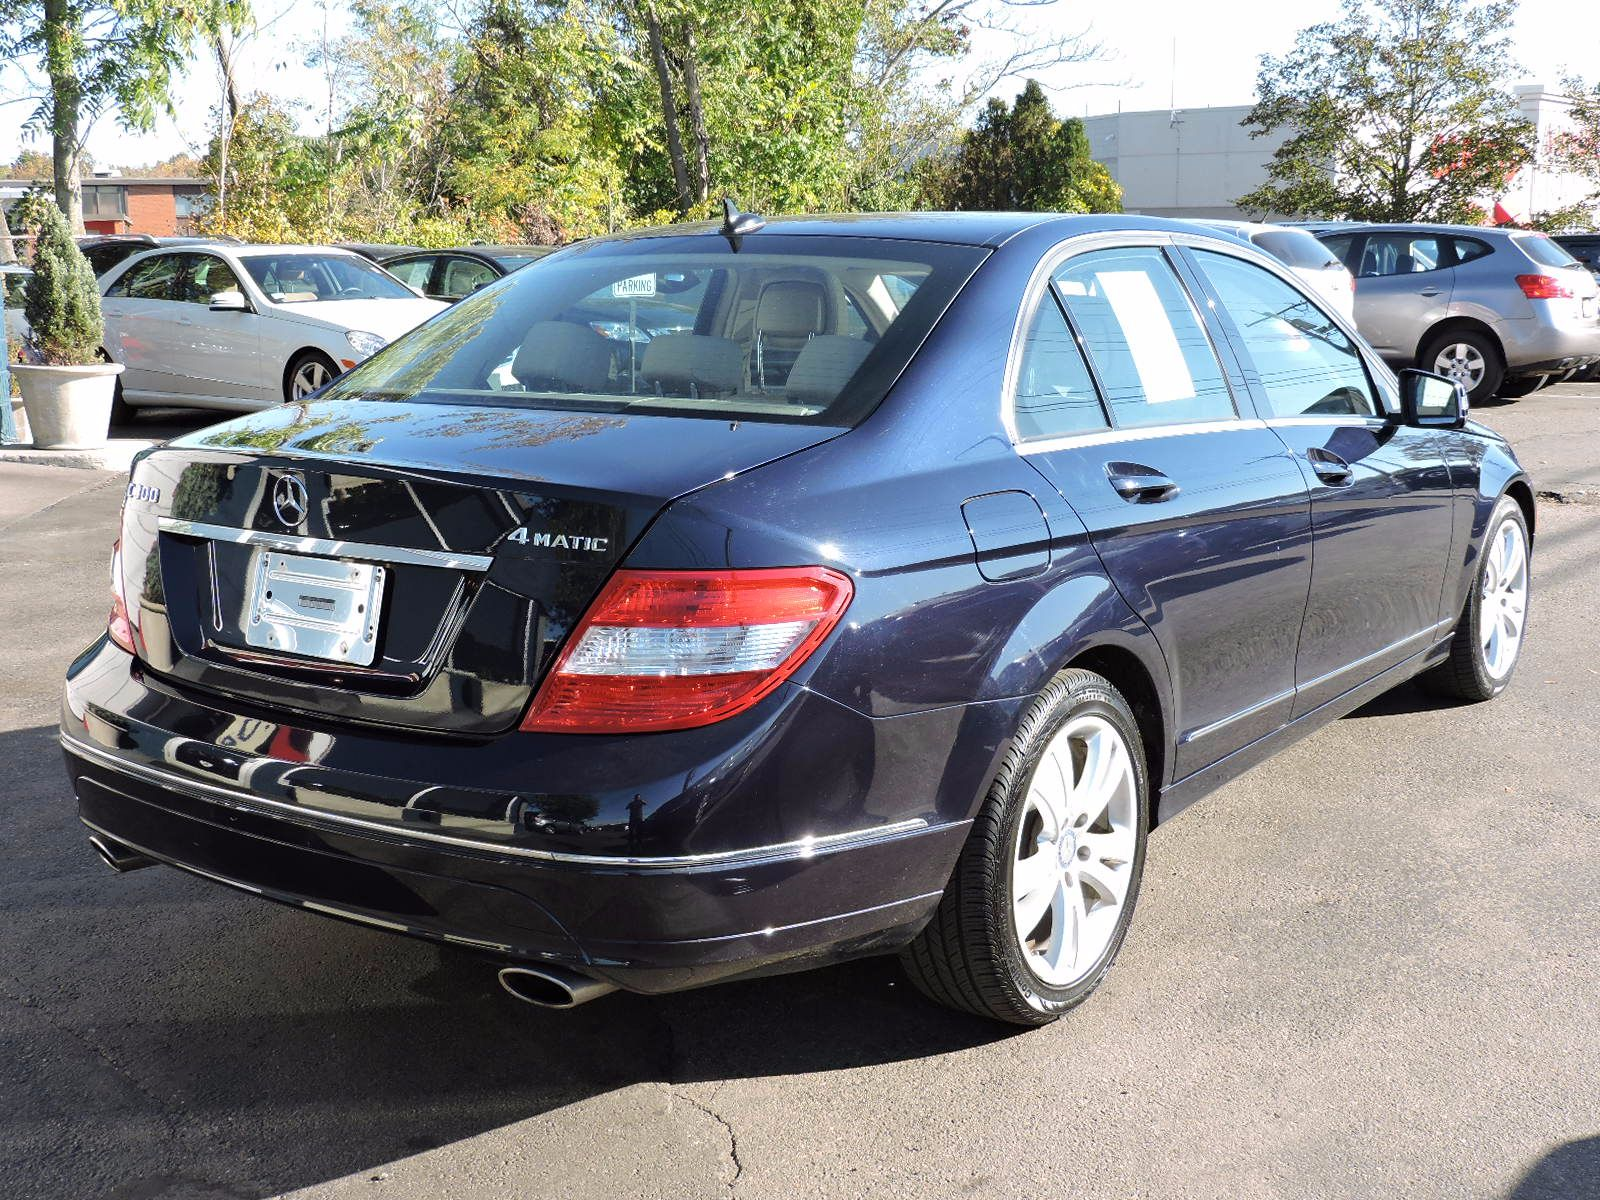 2011 Mercedes-Benz C 300 Luxury - 4Matic - All Wheel Drive - Navigation